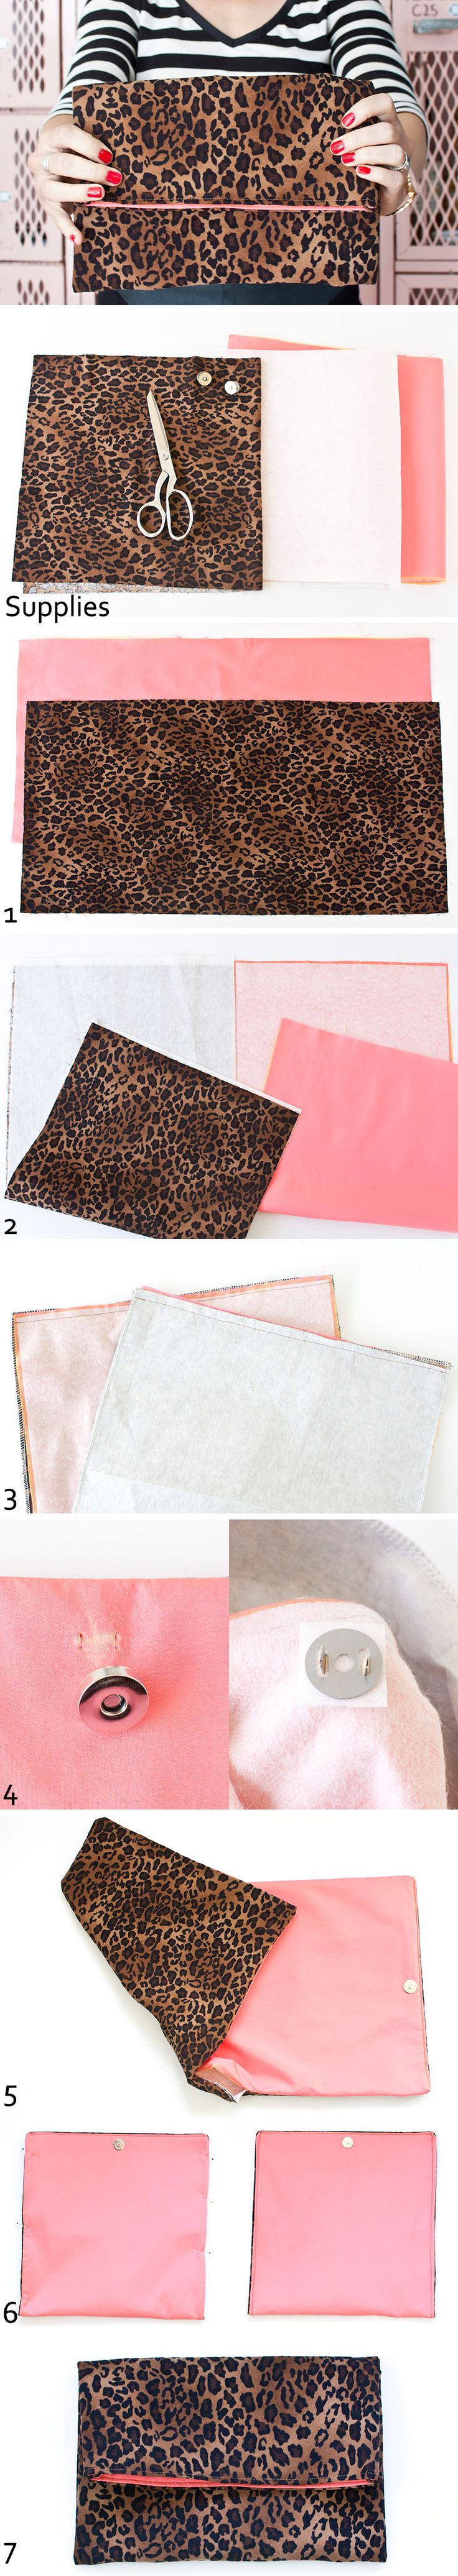 Sew a Leopard Fold-Over Clutch | Transient Expression